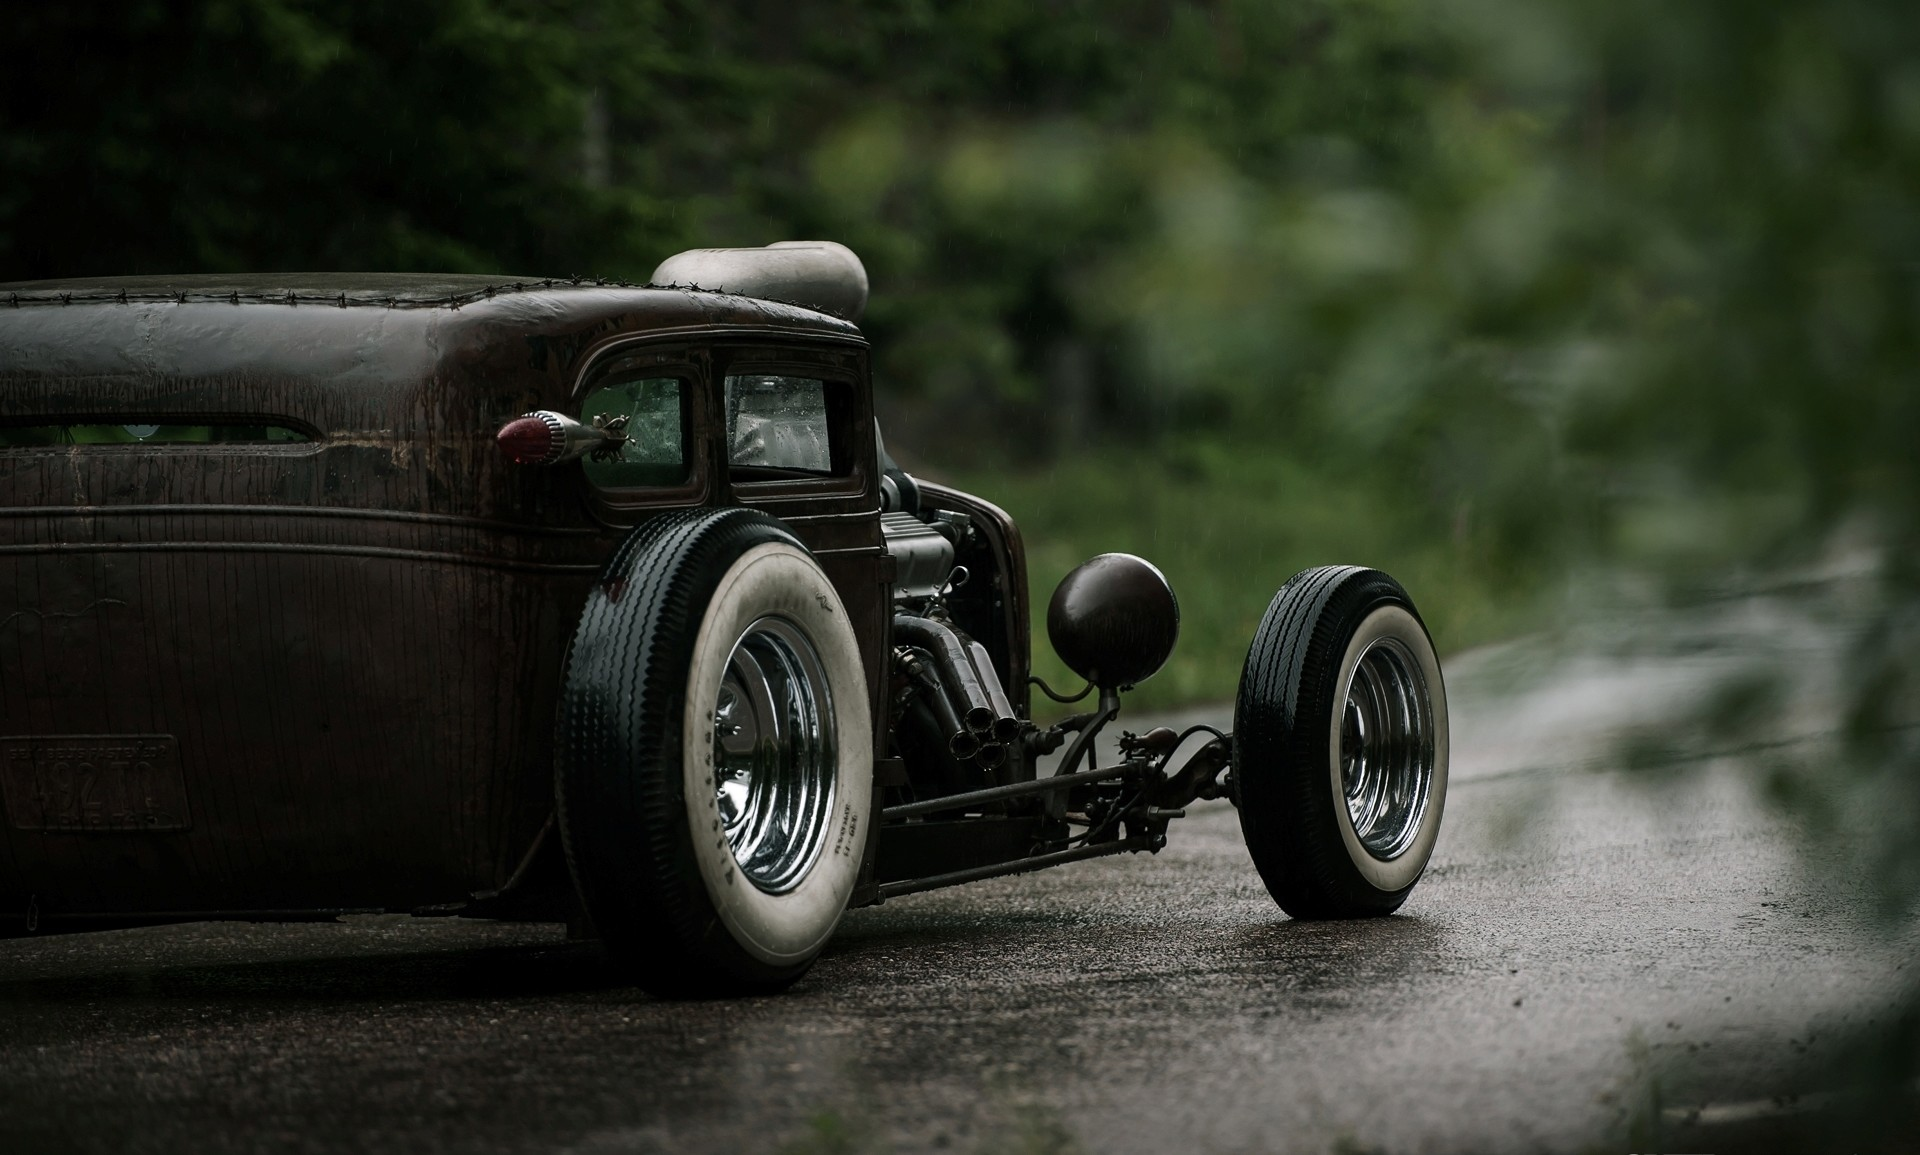 1920x1155 Hot Rod Wallpapers - The Wallpaper ...